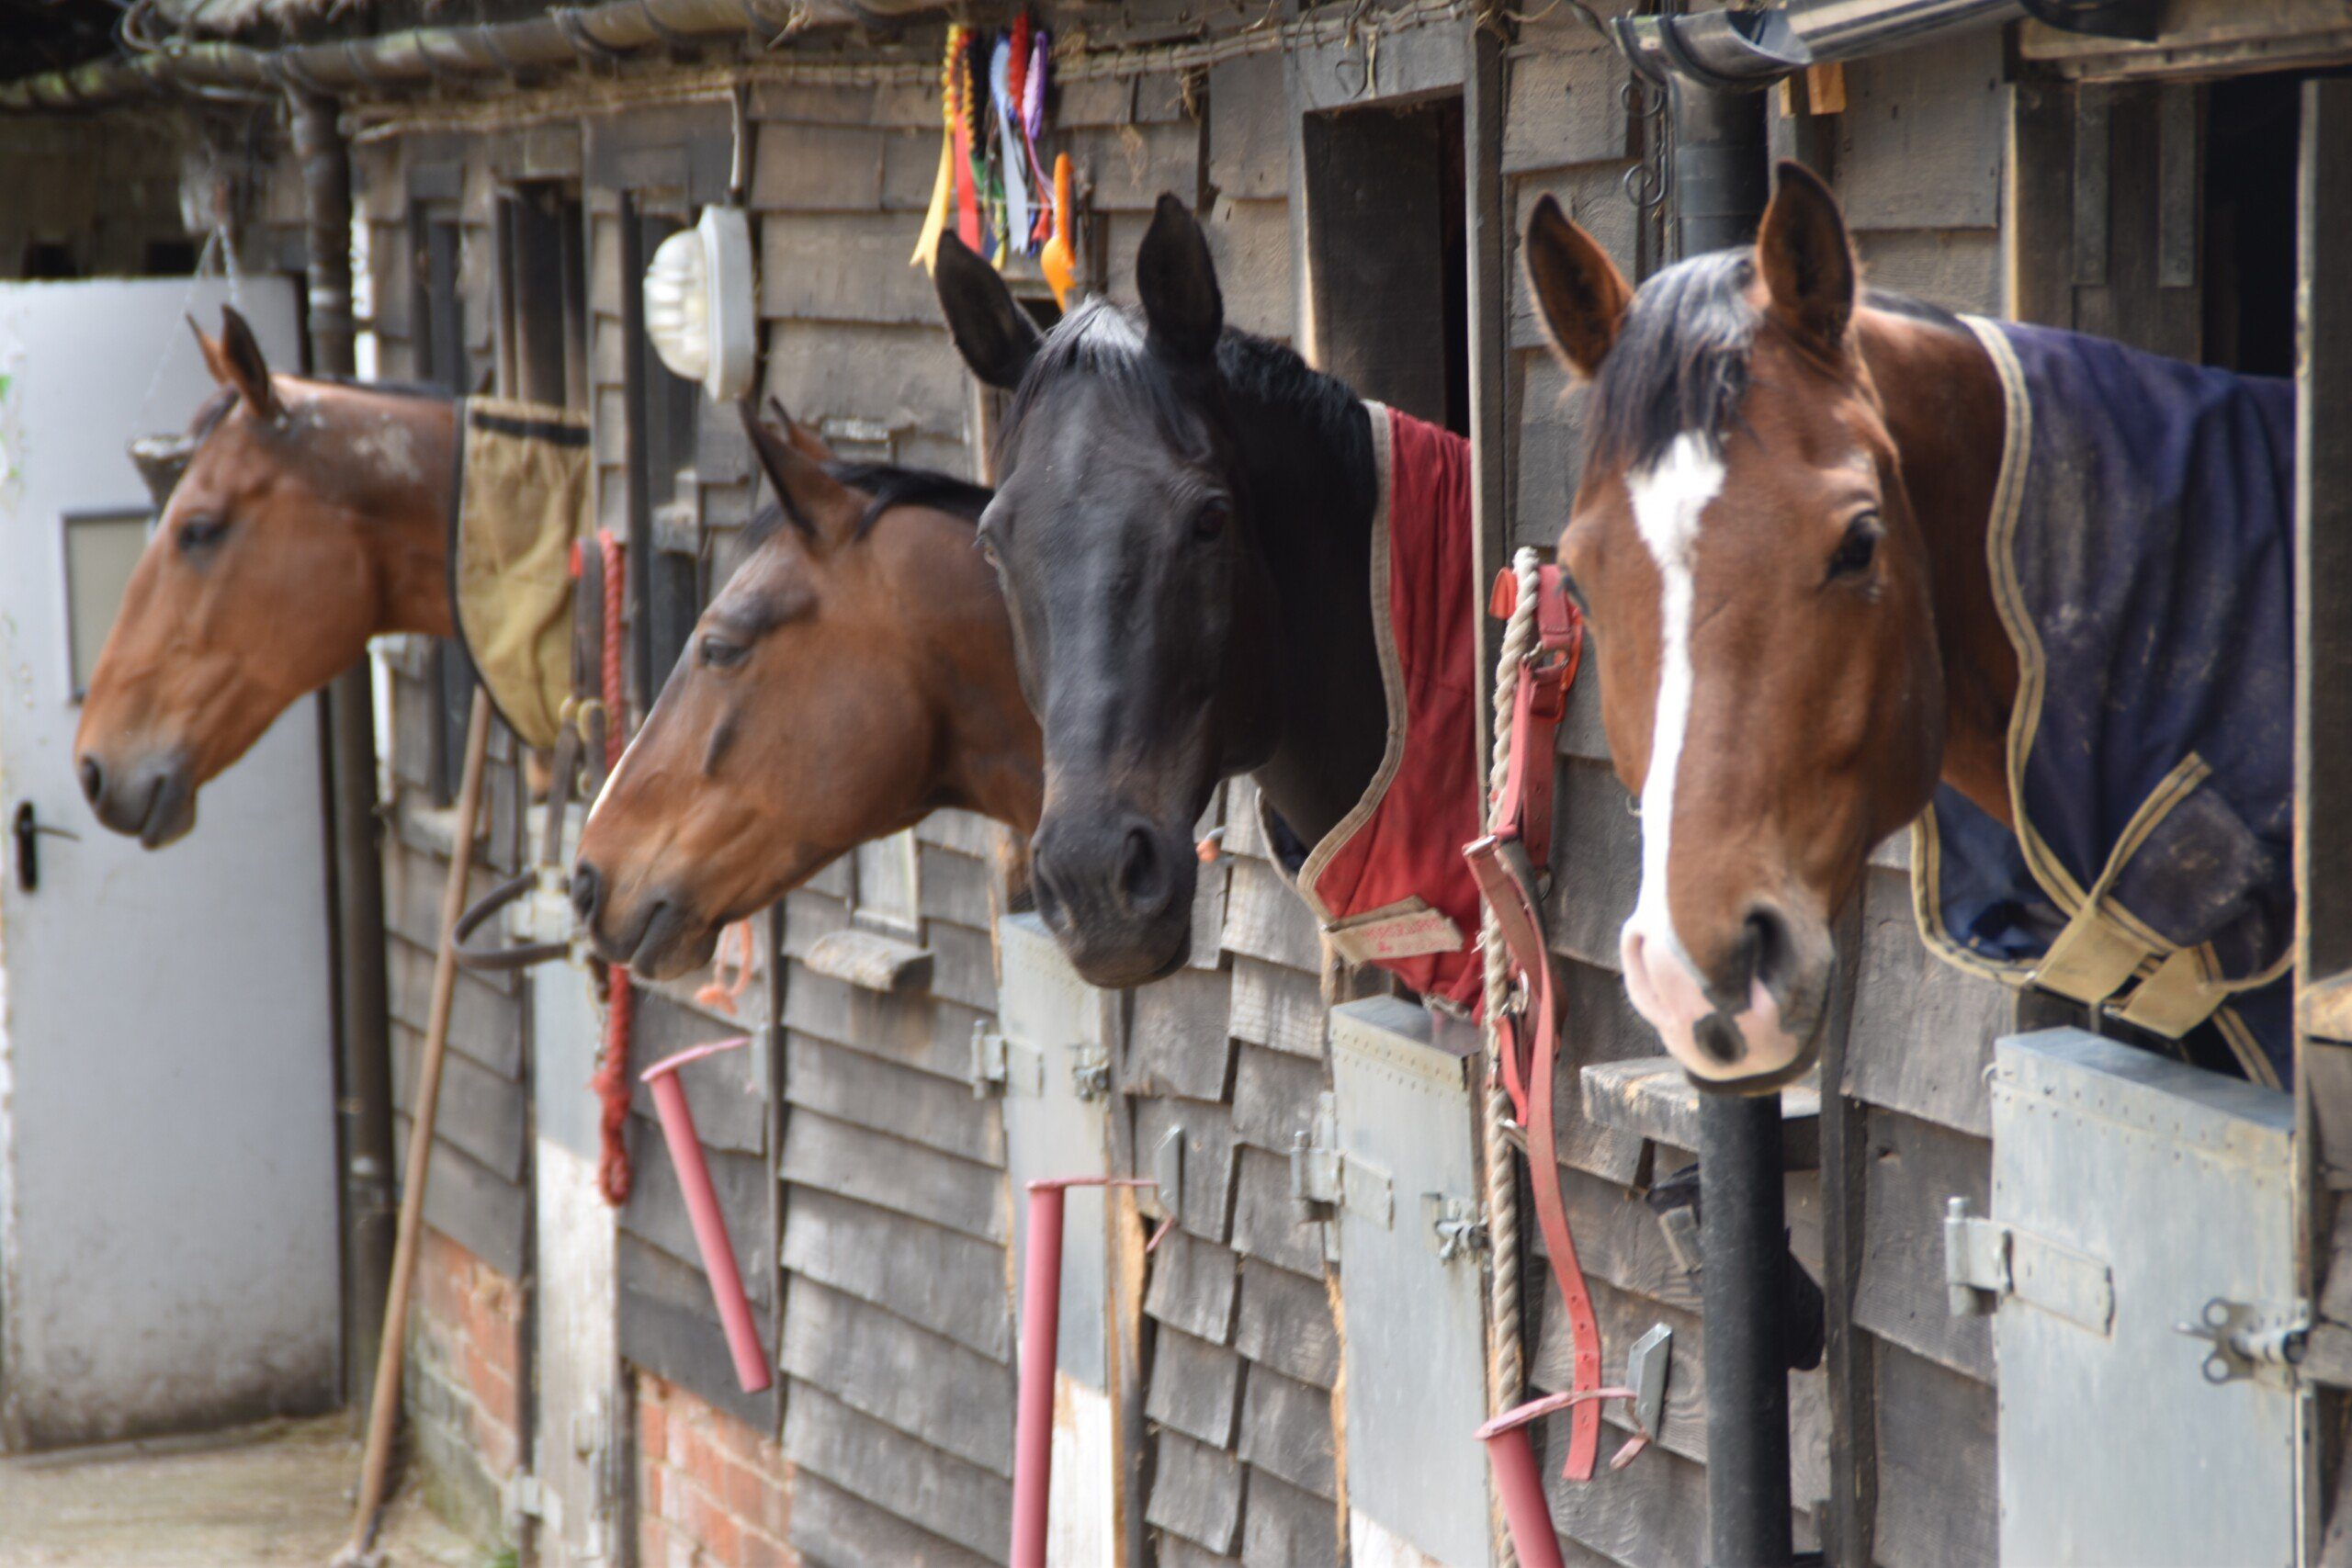 Four horses poke their heads out of a row of stable doors